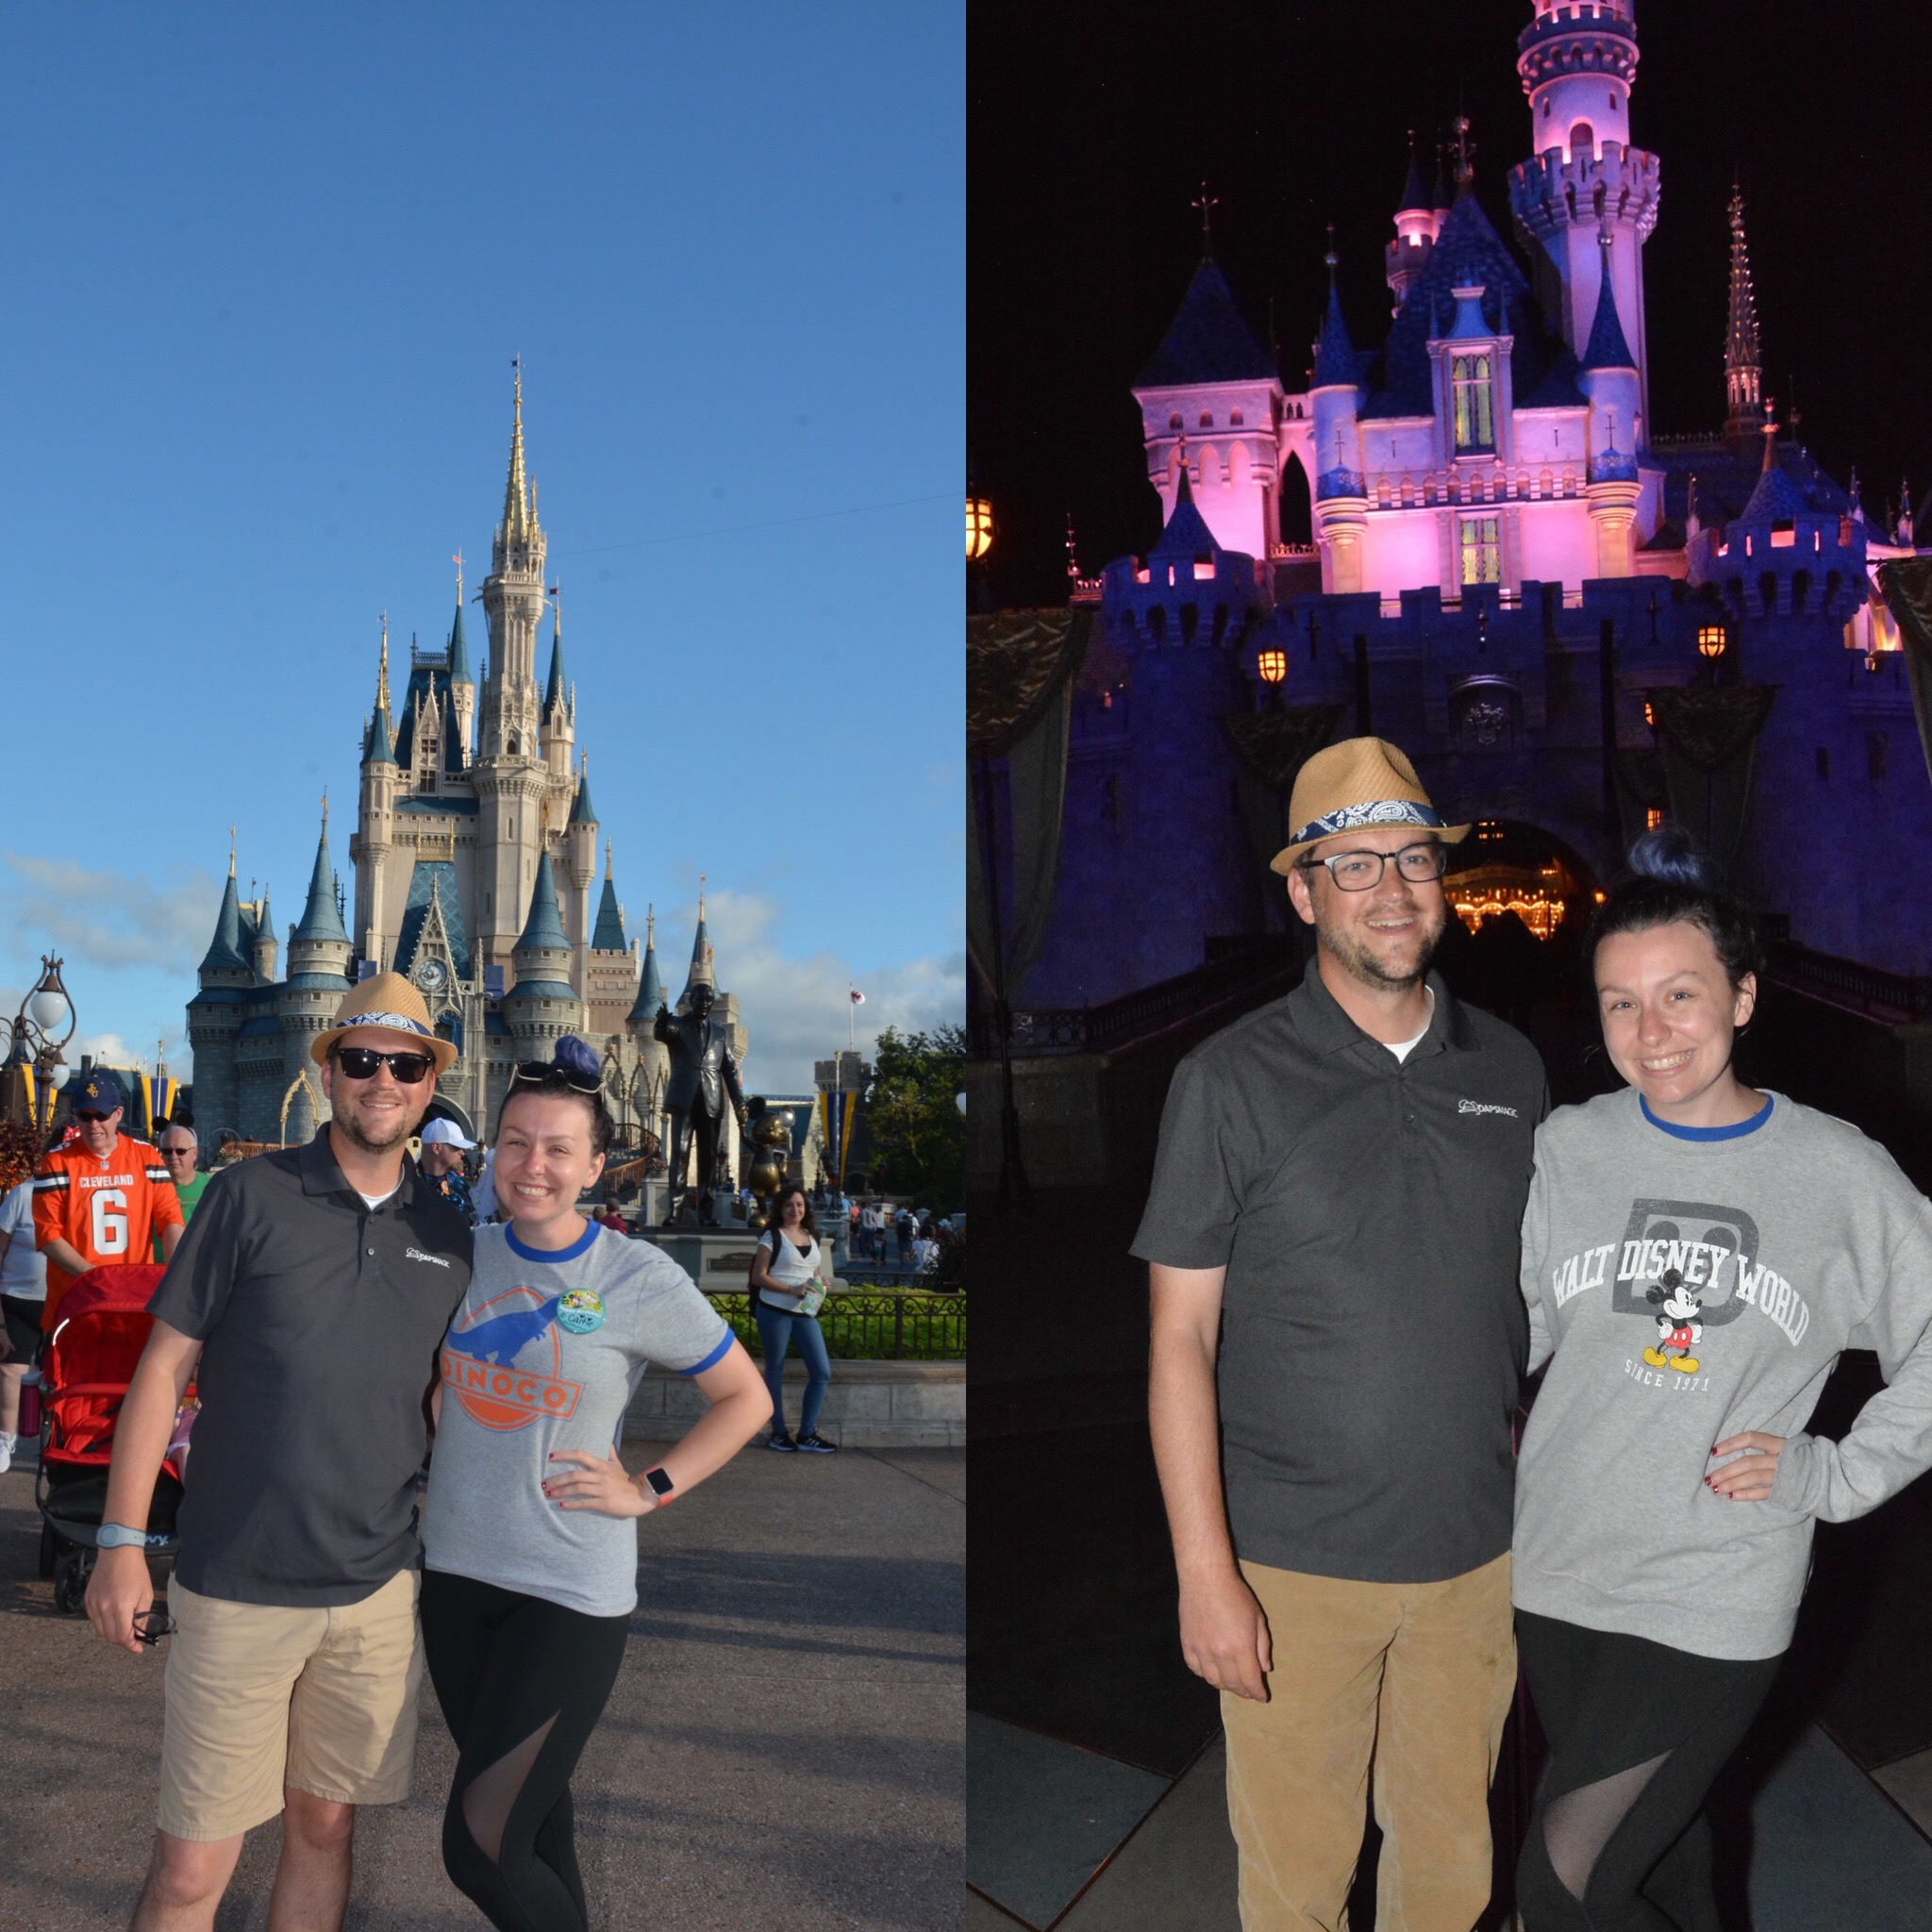 Go From Cinderella Castle to Sleeping Beauty Castle with the DAPs MAGIC Crew on the Last Day of the Walt Disney World Vacation